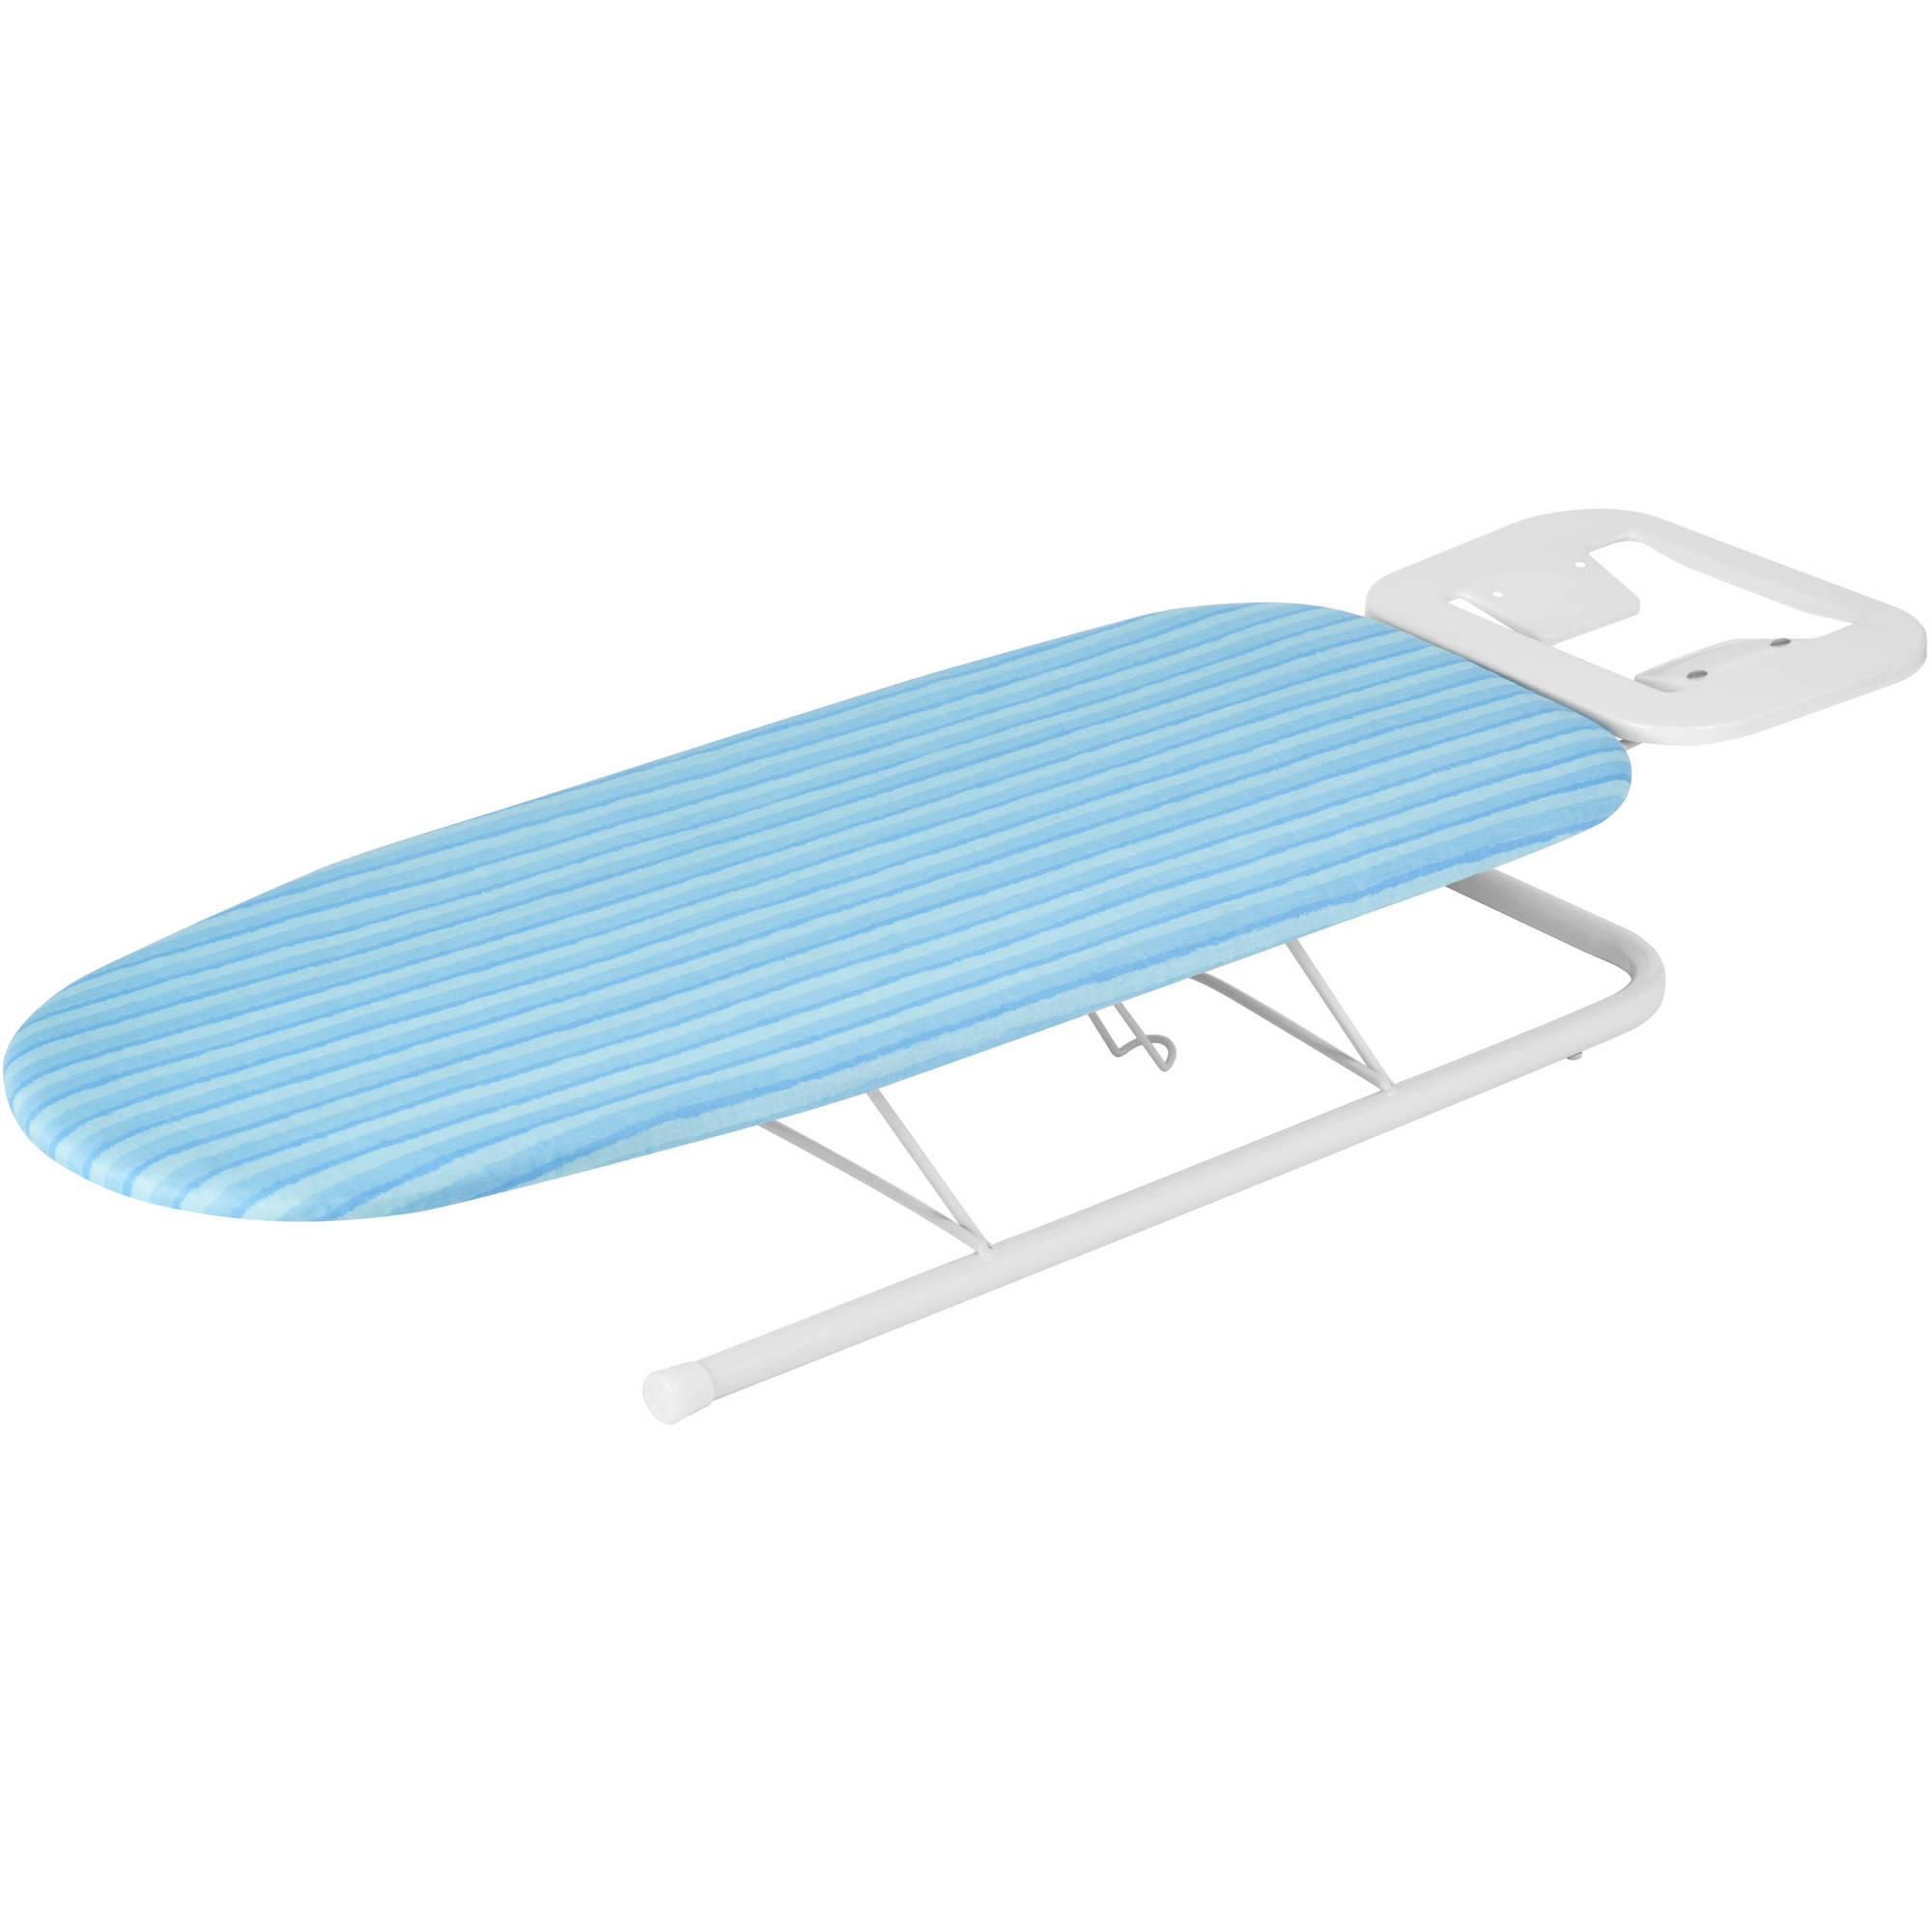 Honey Can Do Tabletop Ironing Board With Iron Rest, Blue   Walmart.com